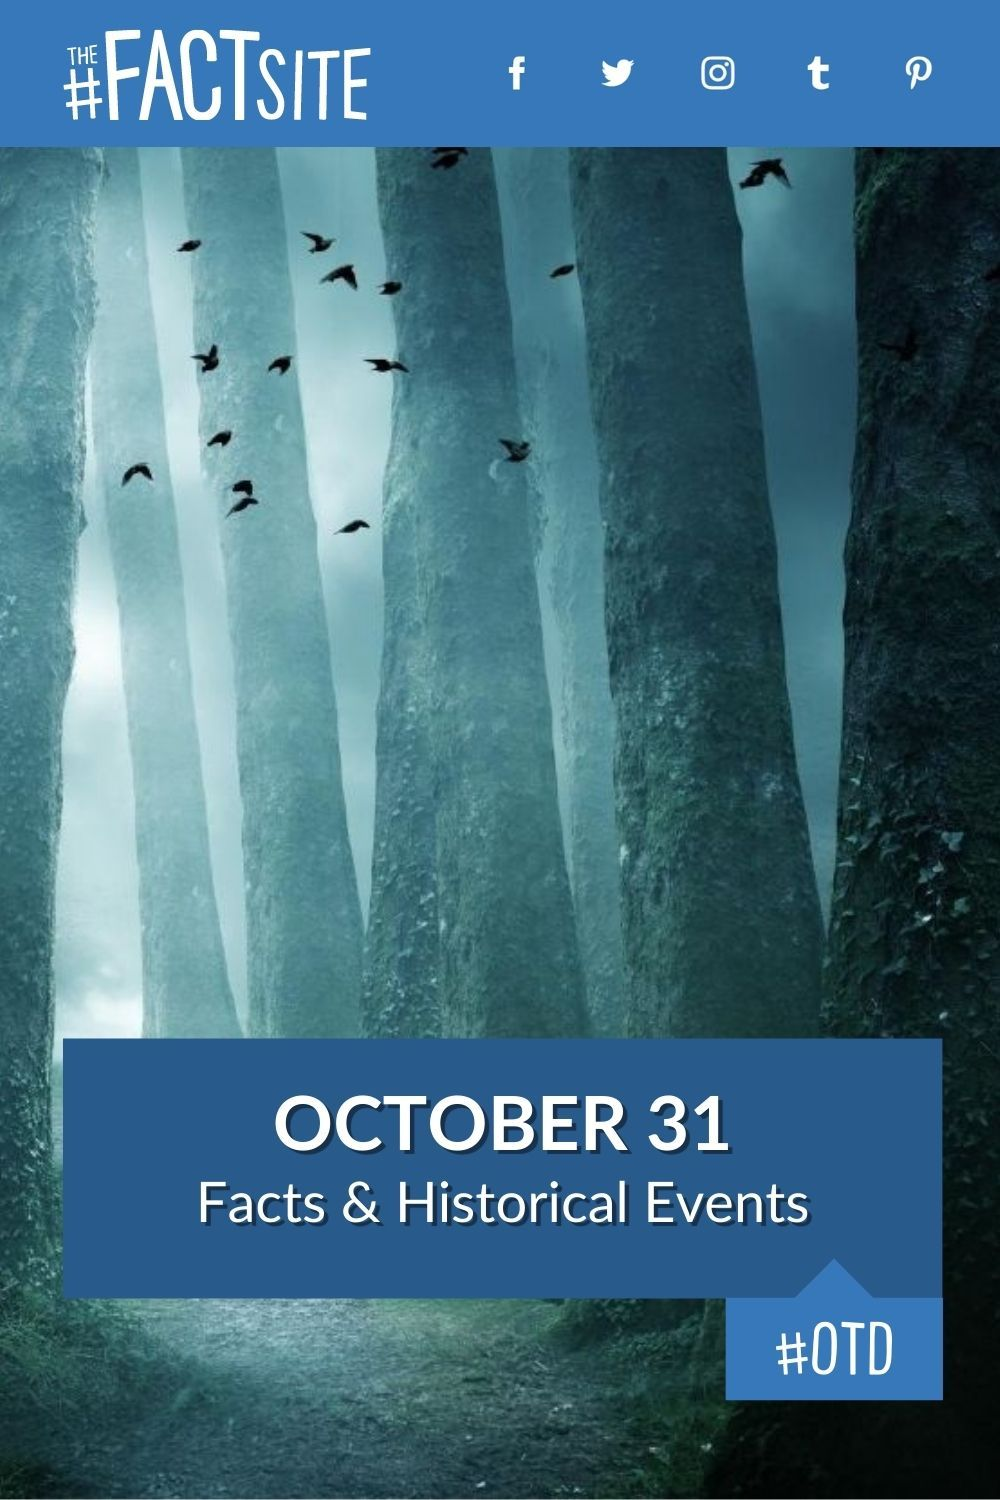 Facts & Historic Events That Happened on October 31